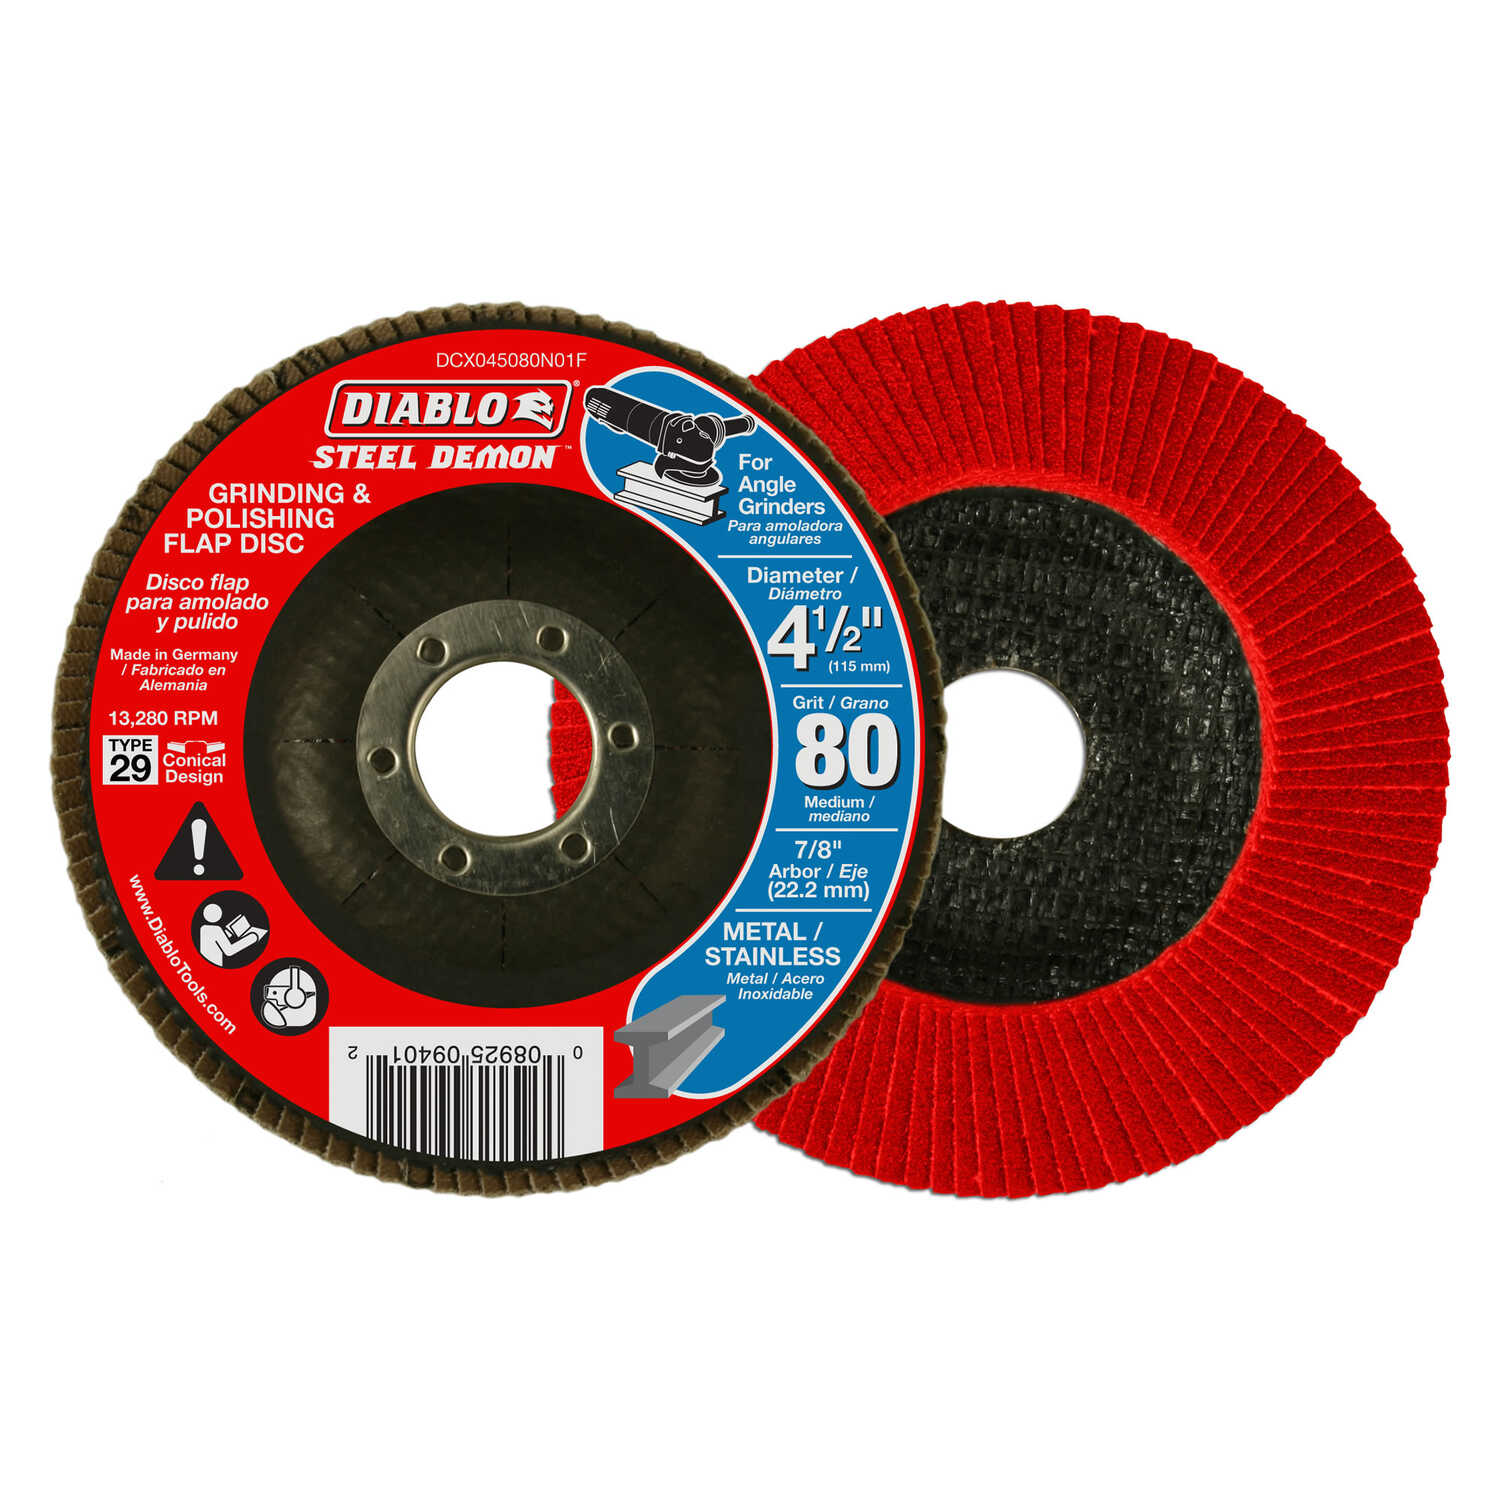 Diablo  Steel Demon  4-1/2 in. Dia. x 7/8 in.   Zirconium  Flap Disc  80 Grit 13280 rpm 1 pc.